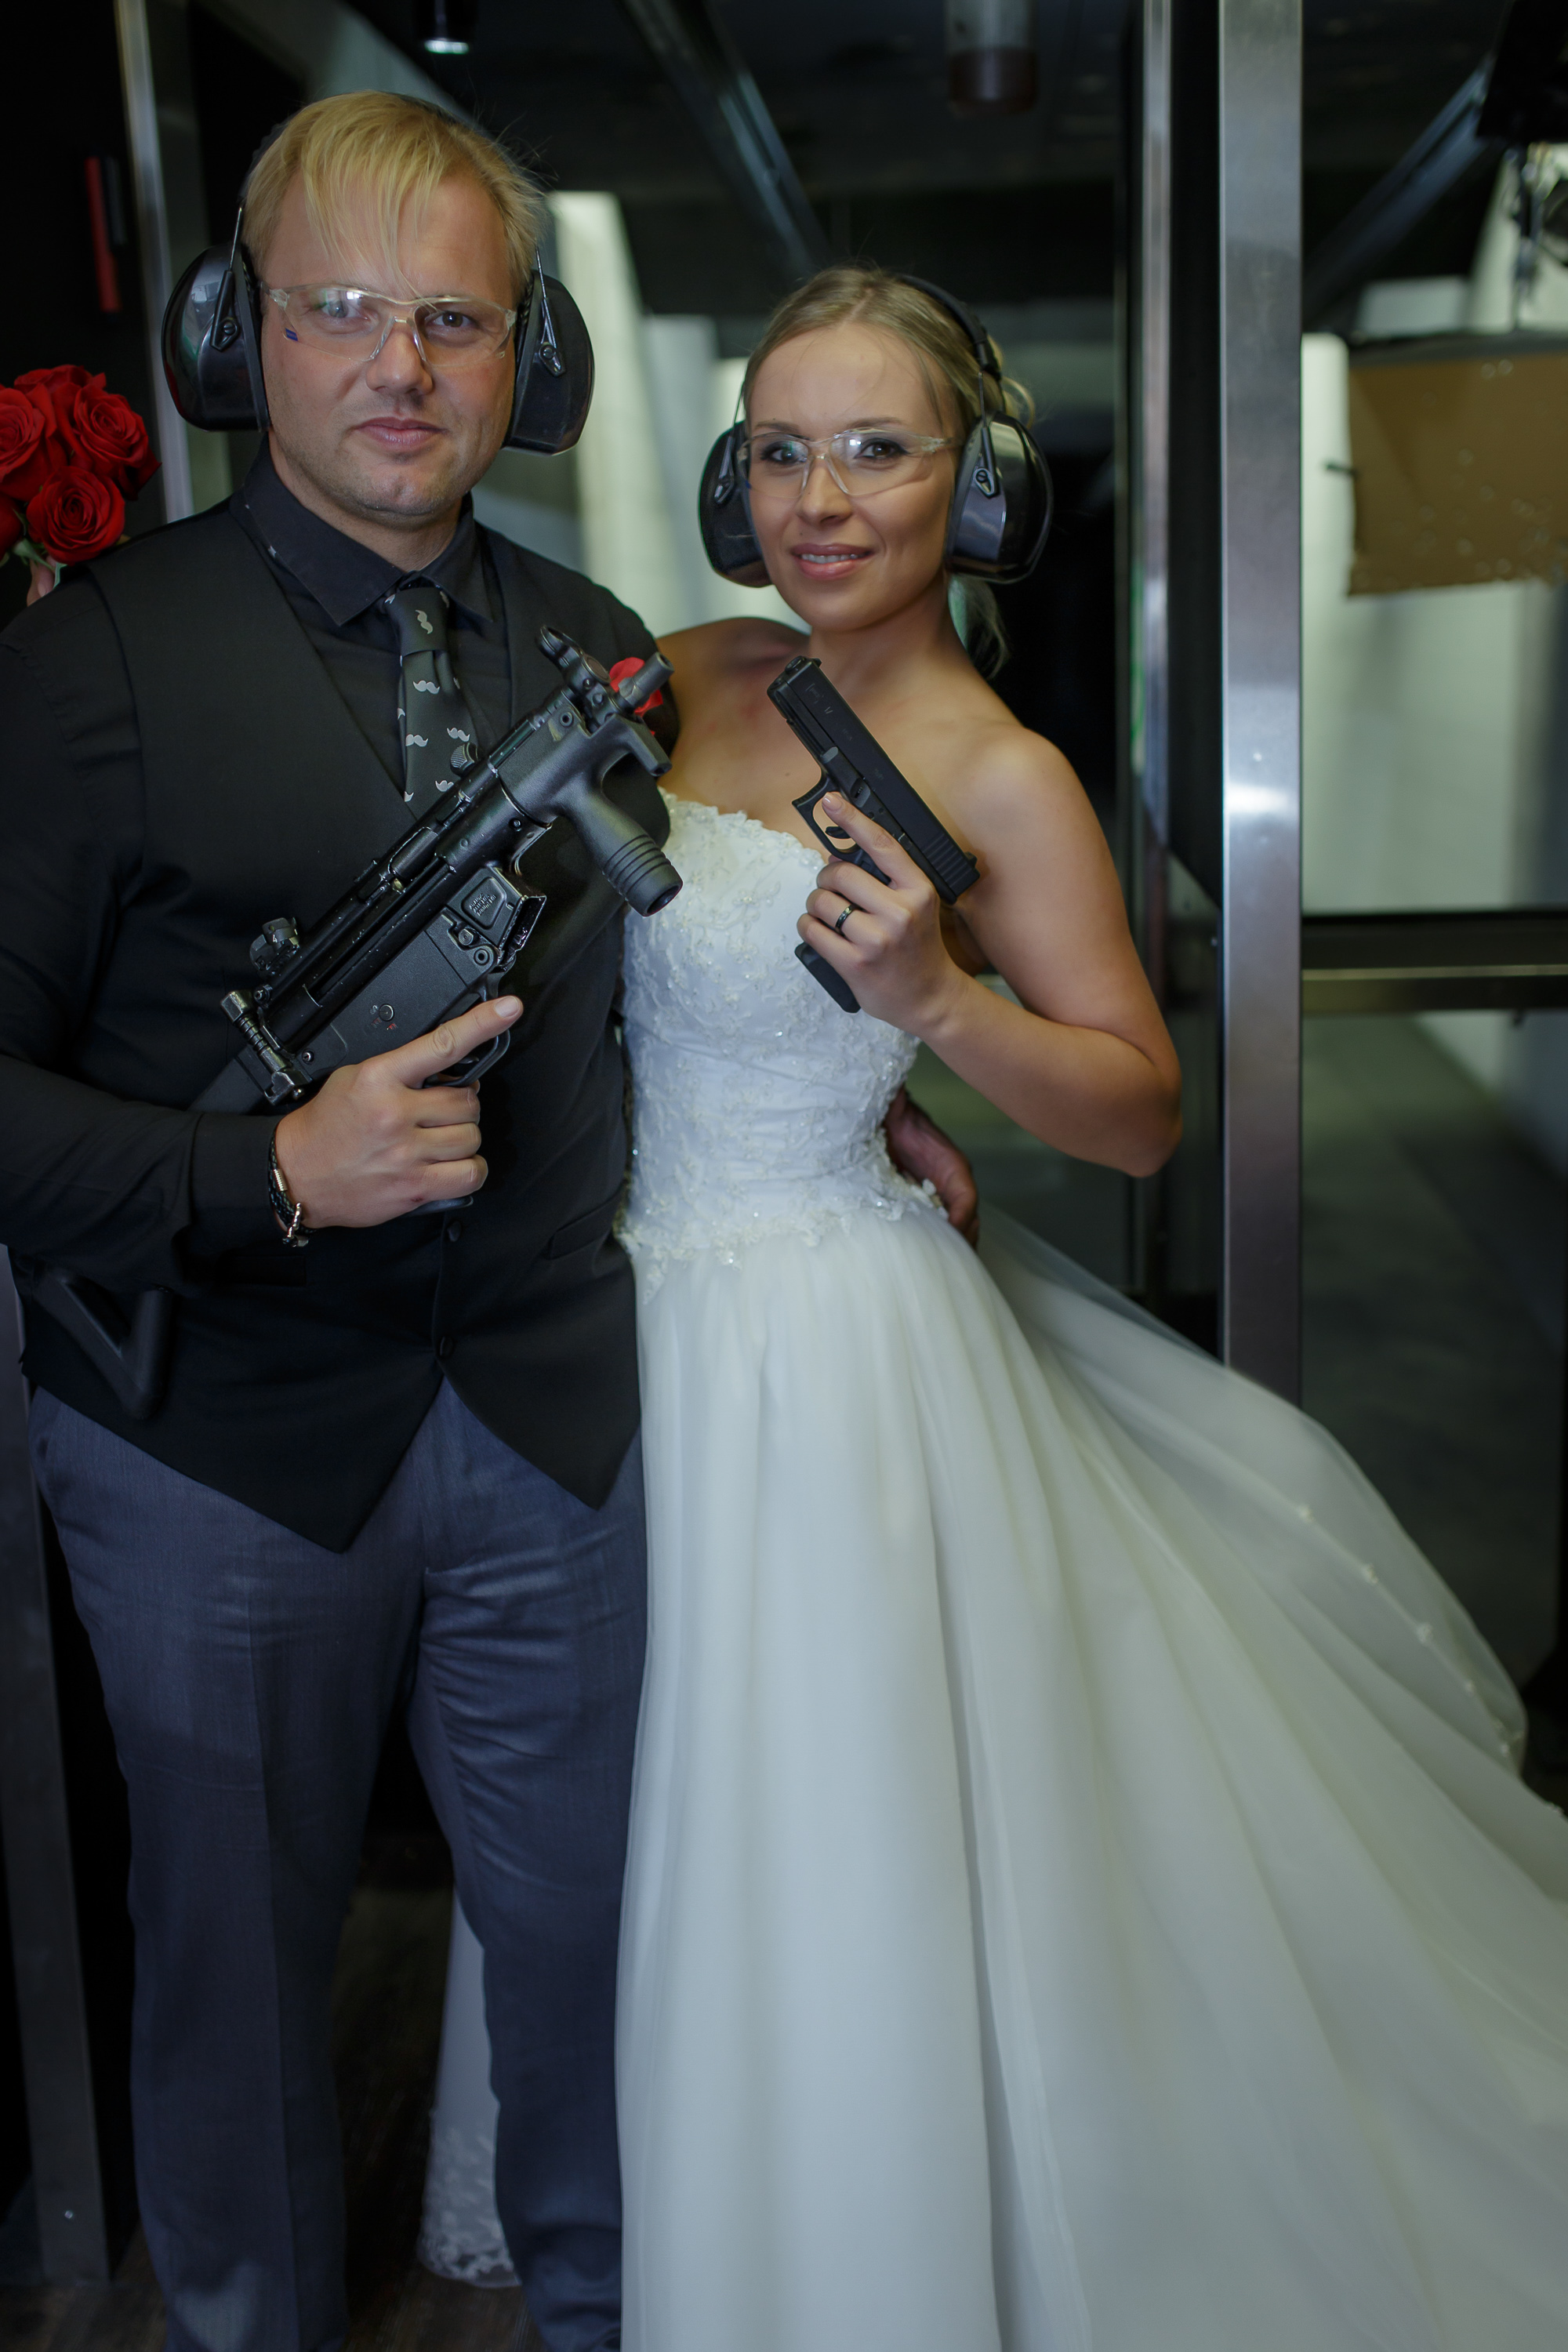 Man and Wife and gun